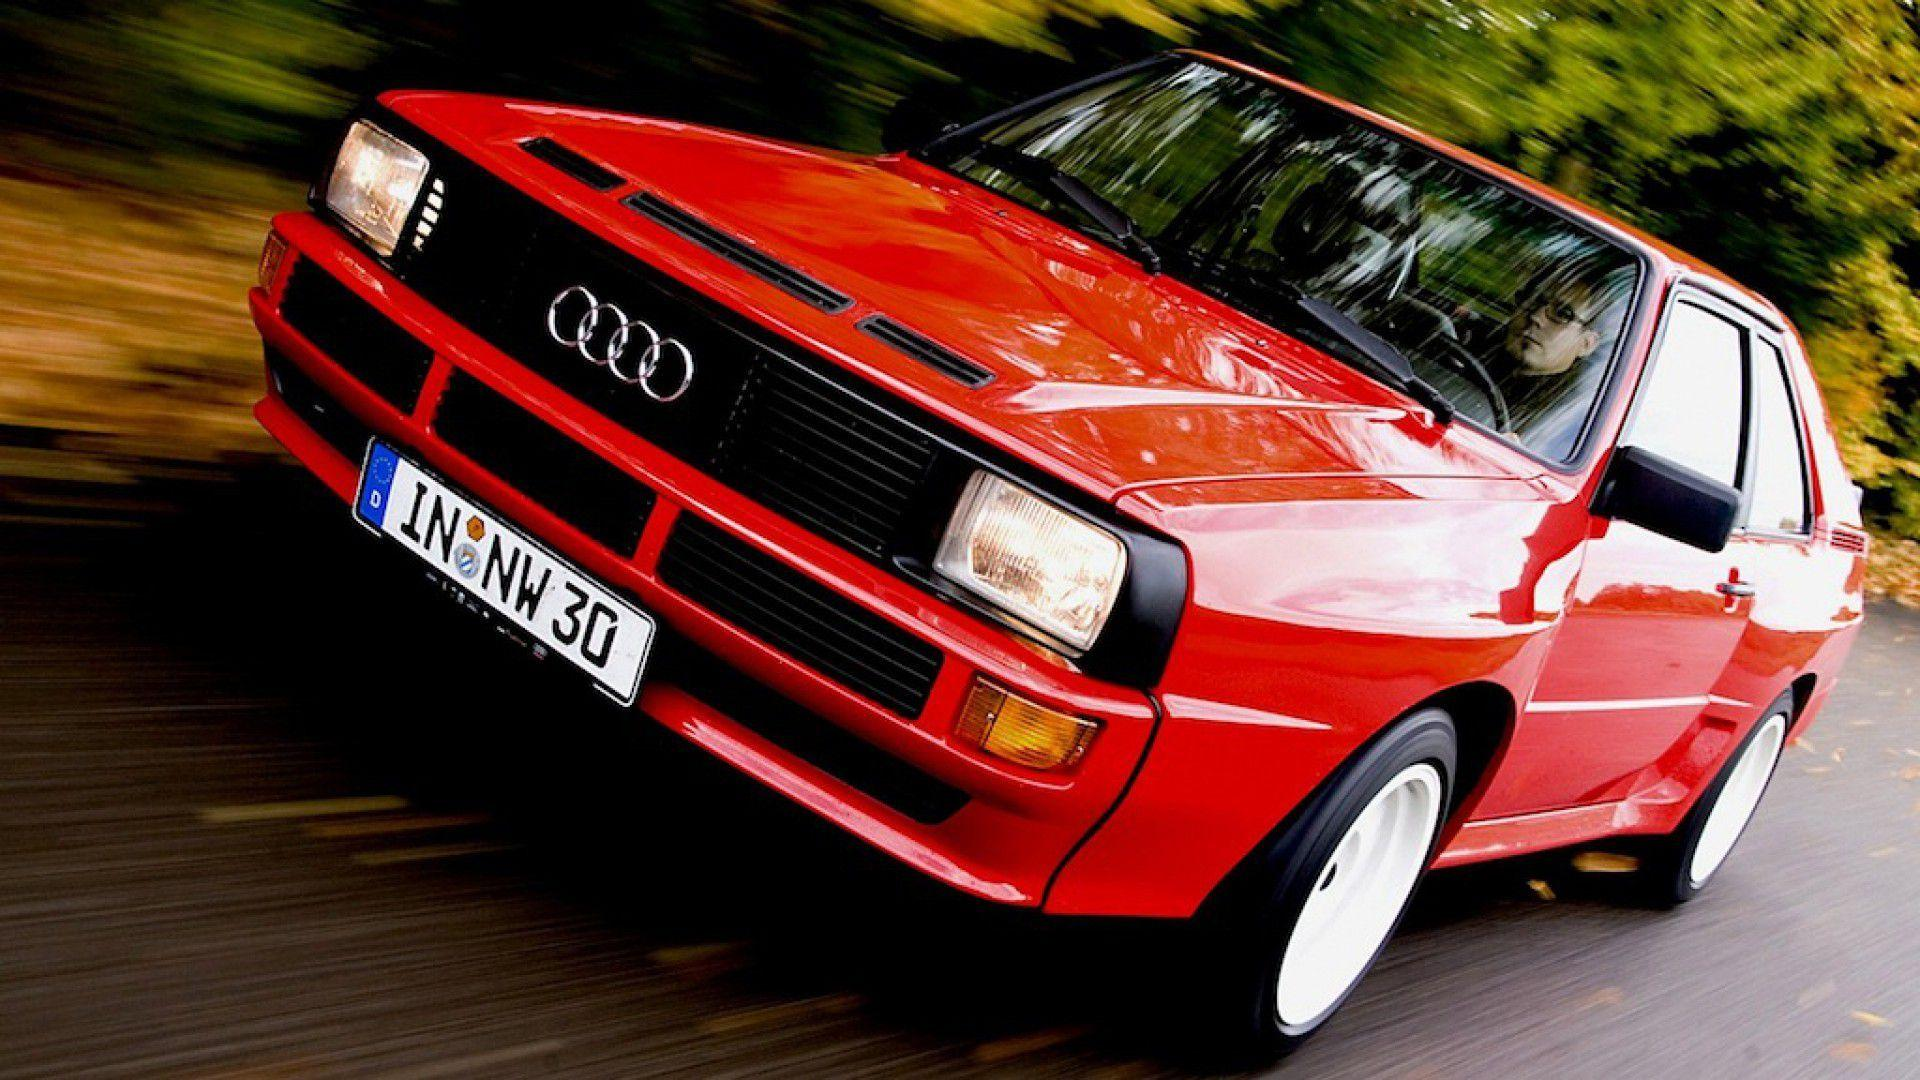 Audi Quattro S1 Rally Car Sport Wallpapers Wallpaper: Audi Quattro Wallpapers